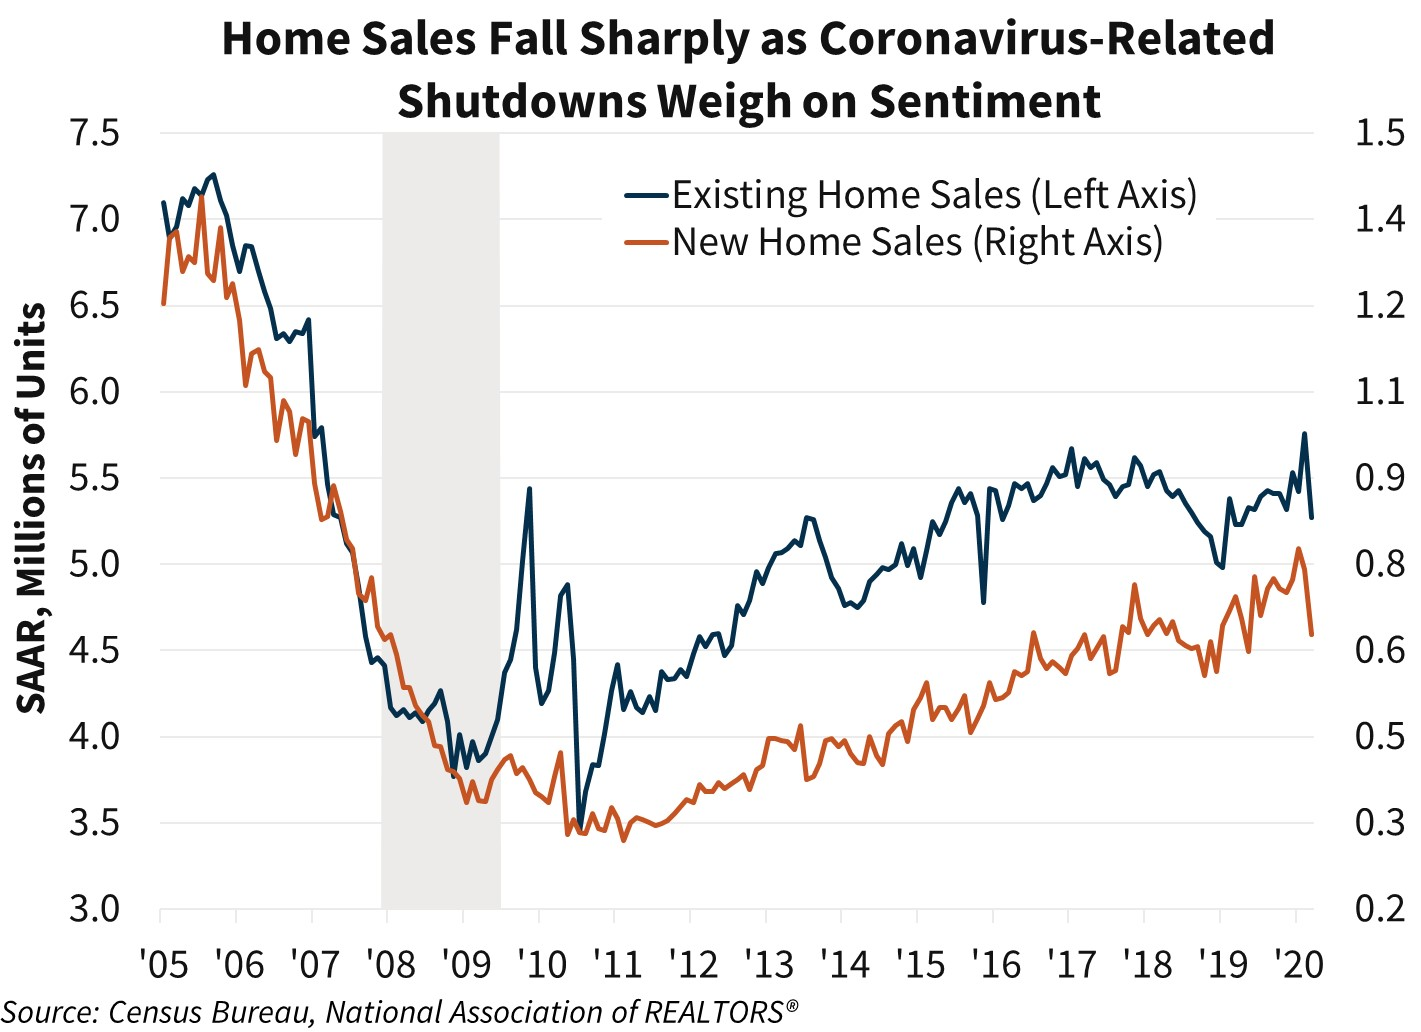 Home Sales Fall Sharply as Coronavirus-Related Shutdowns Weigh on Sentiment